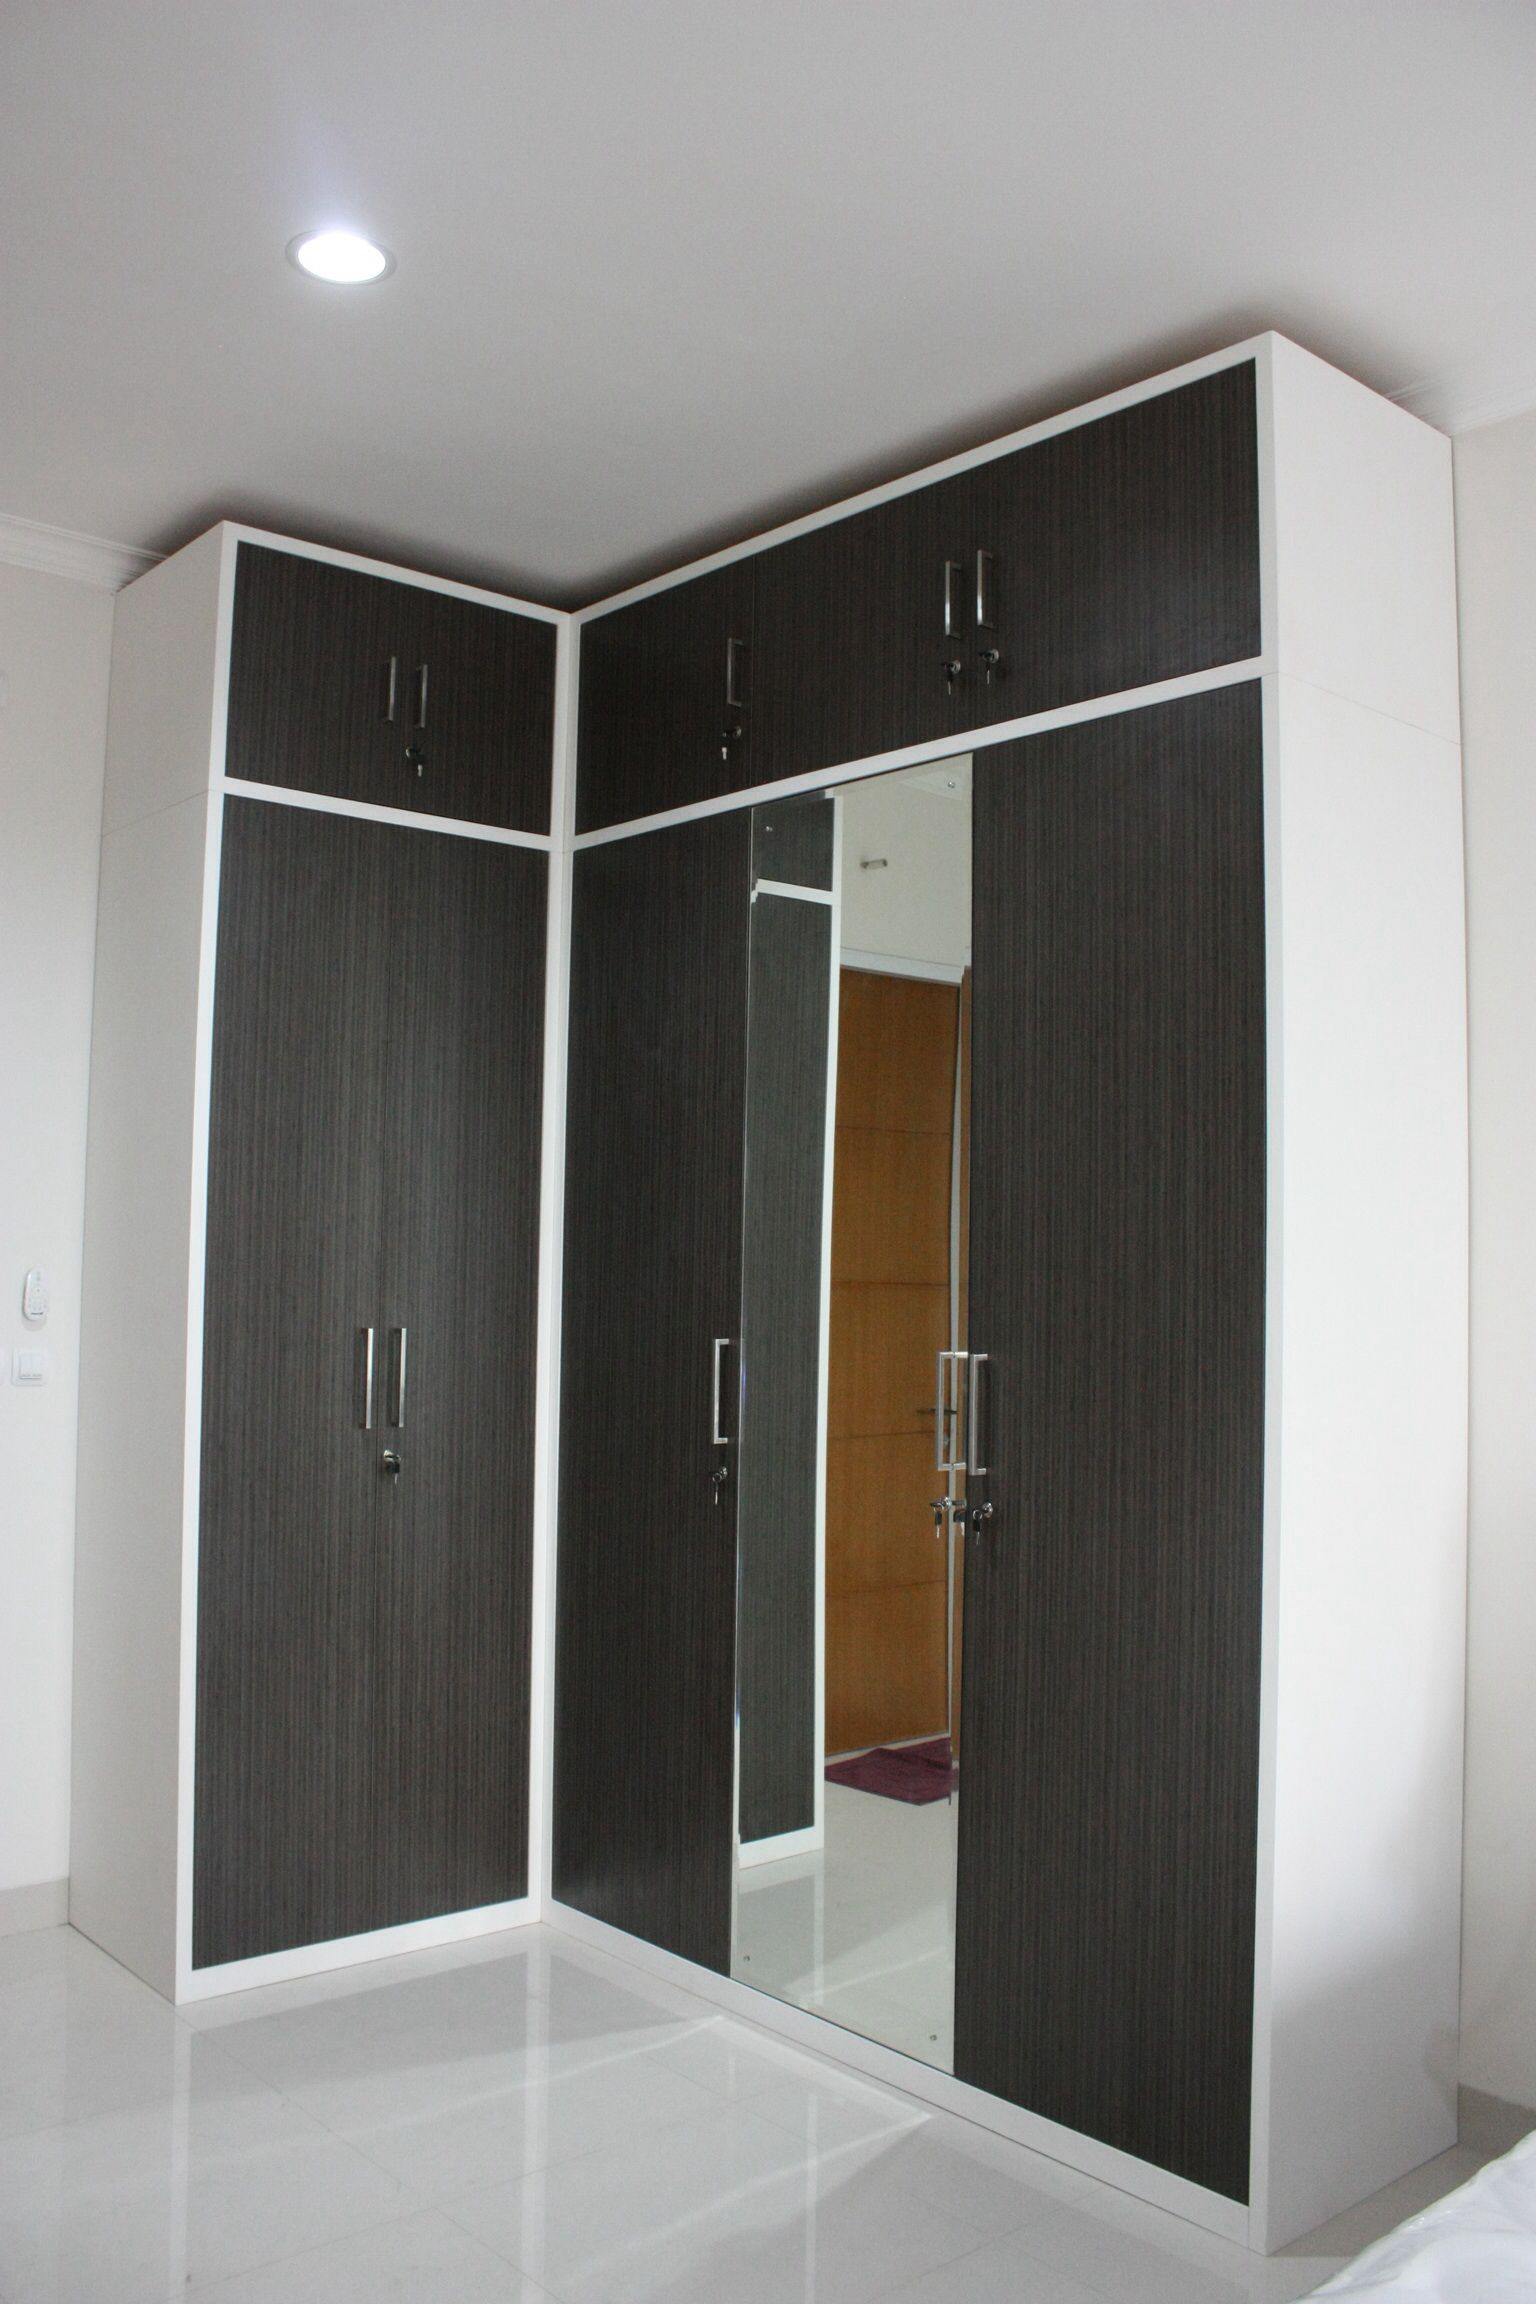 Customized L shaped wardrobe in Japanese Bamboo HPL finish